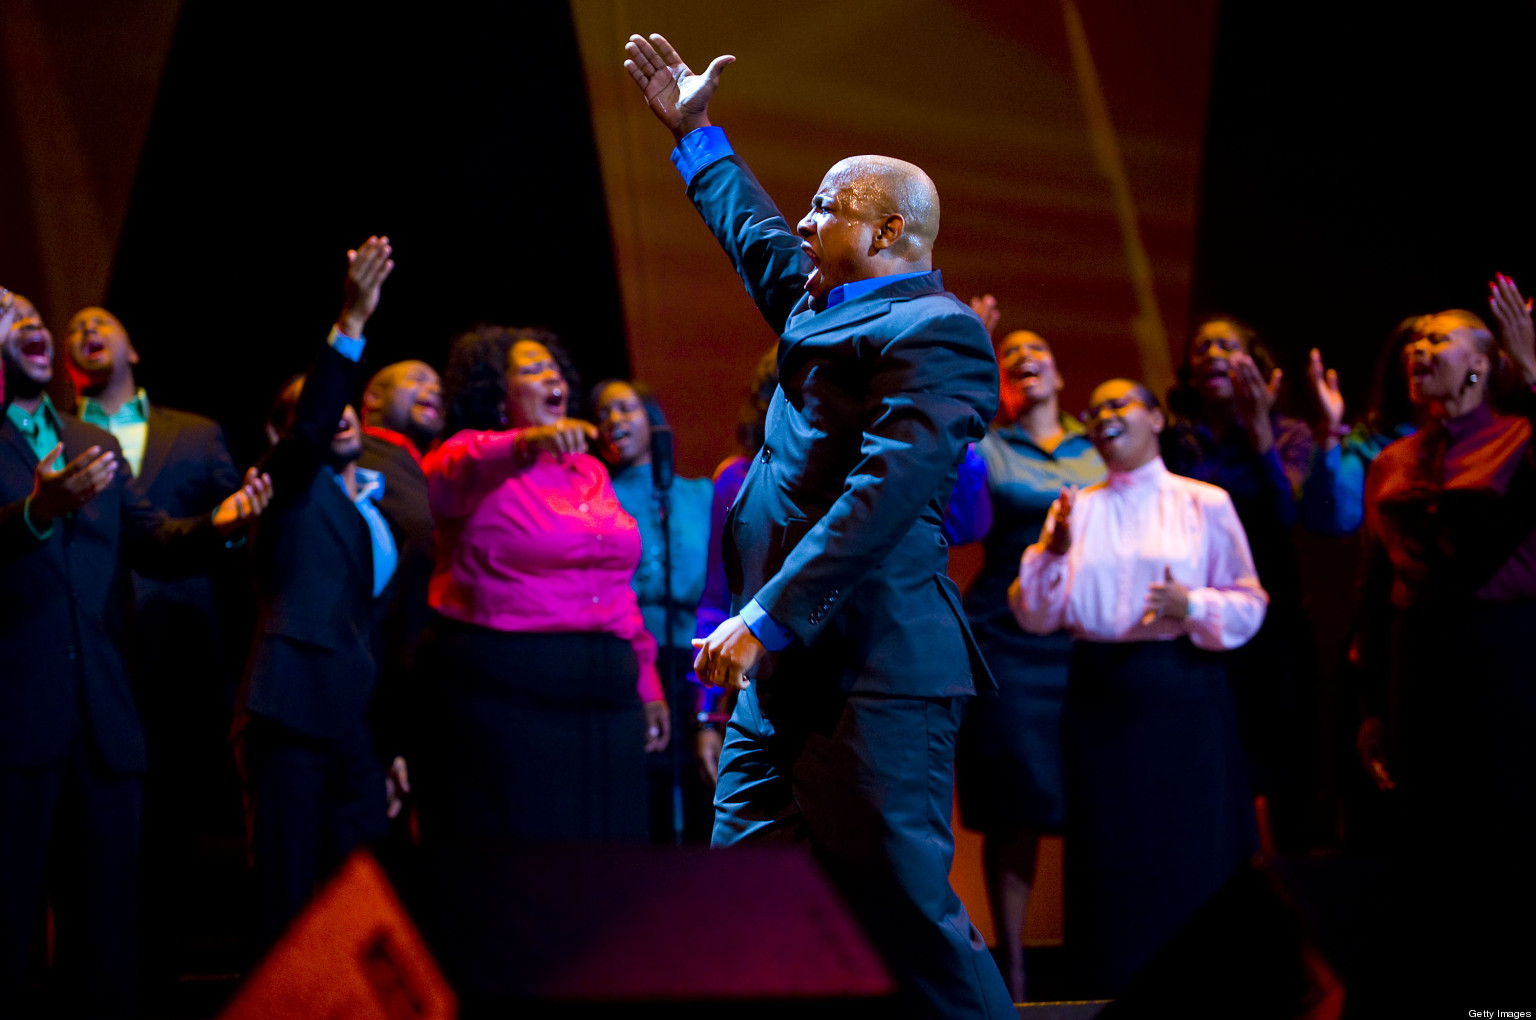 PHILADELPHIA, PA - SEPTEMBER 26: The Anointed Voices of Ford Memorial Temple Choir perform at the Verizon Wireless 'How Sweet the Sound' National Gospel Competition at the Wachovia Center on September 26, 2009 in Philadelphia, Pennsylvania. The Choir was the winner in the Large Choir category. (Photo by Jeff Fusco/Getty Images for Verizon Wireless)